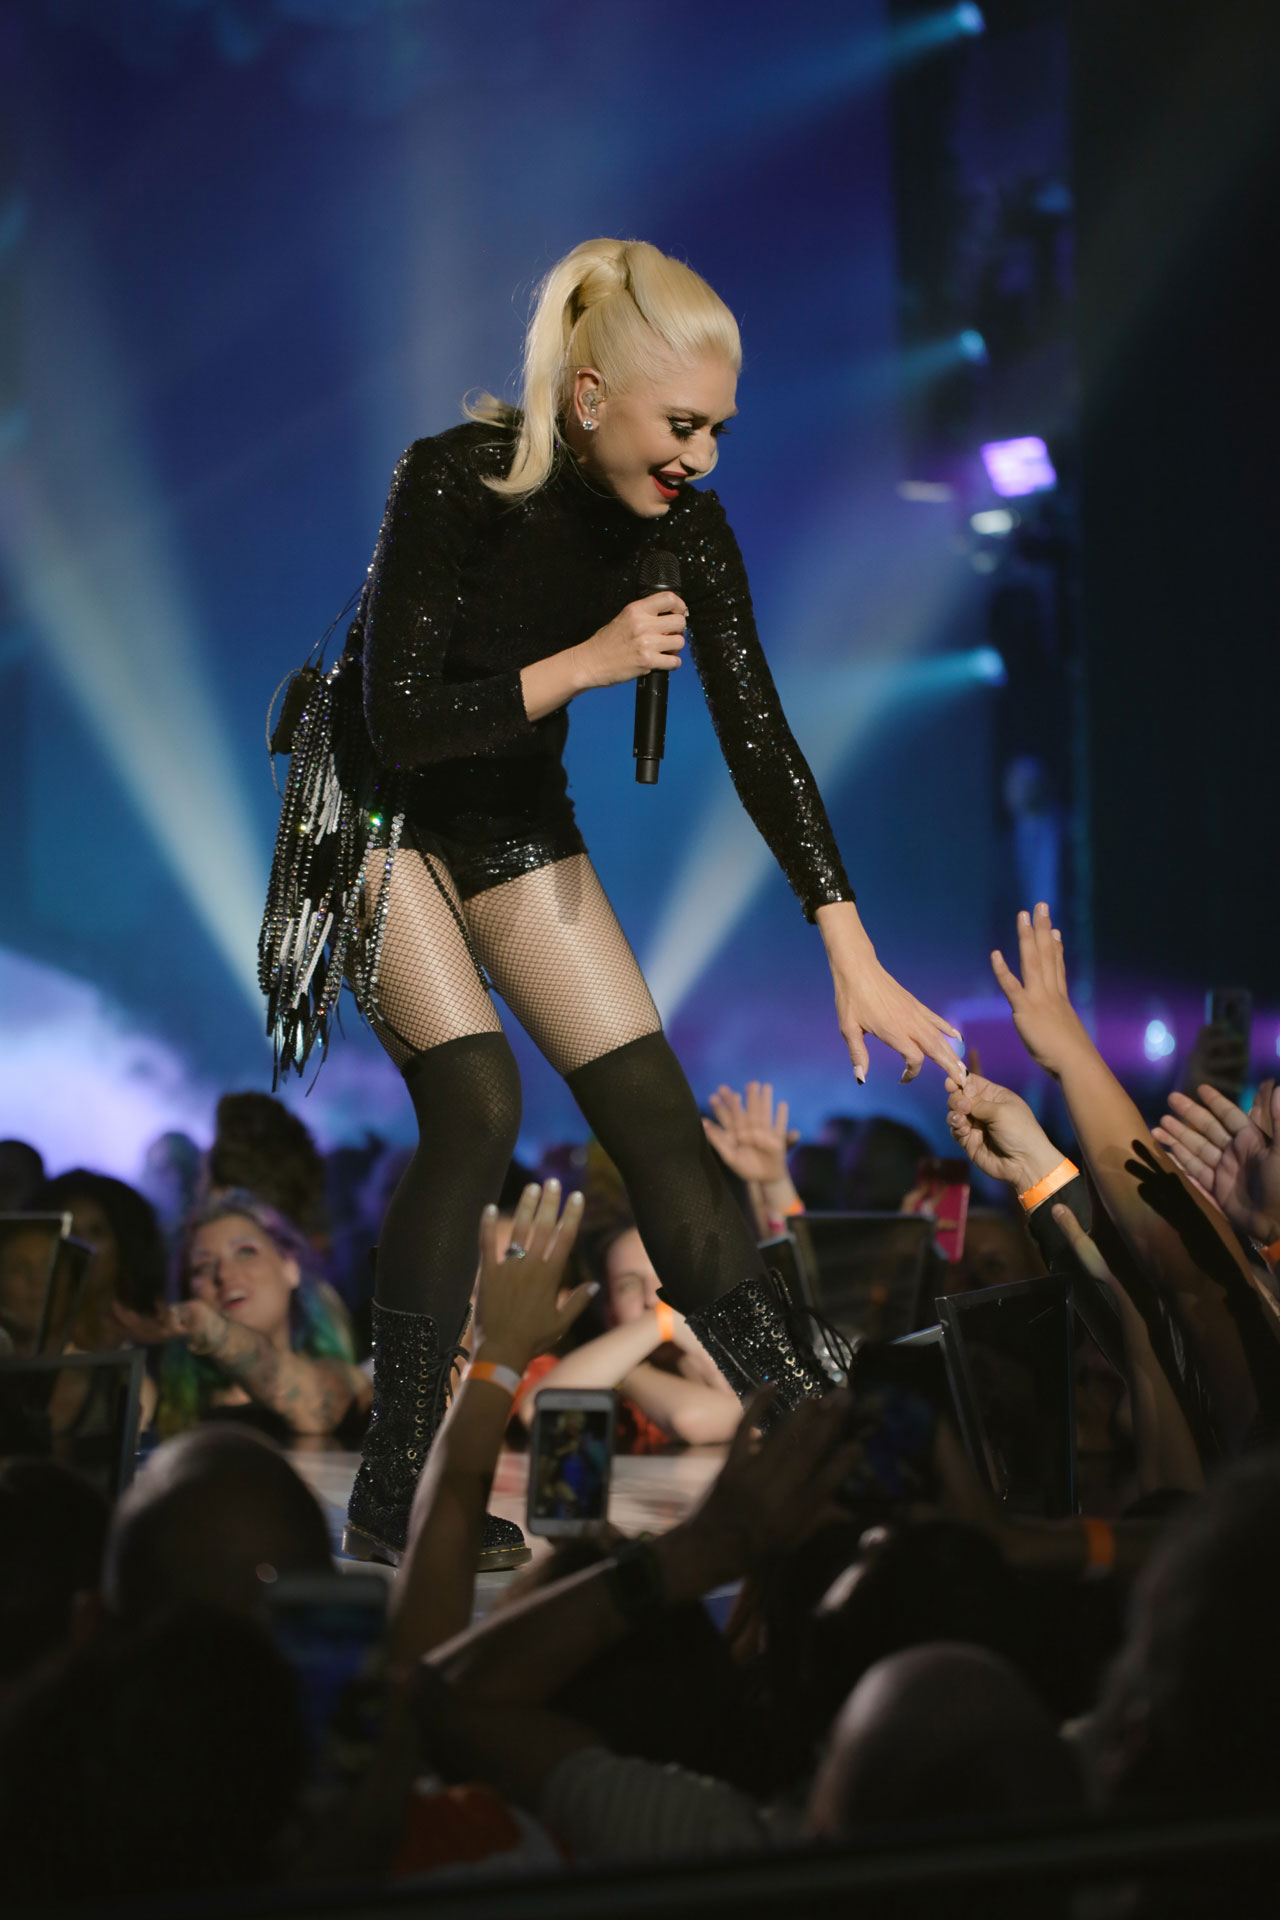 Gwen Stefani Just A Girl Vegas Planet Hollywood Concert Photo 3